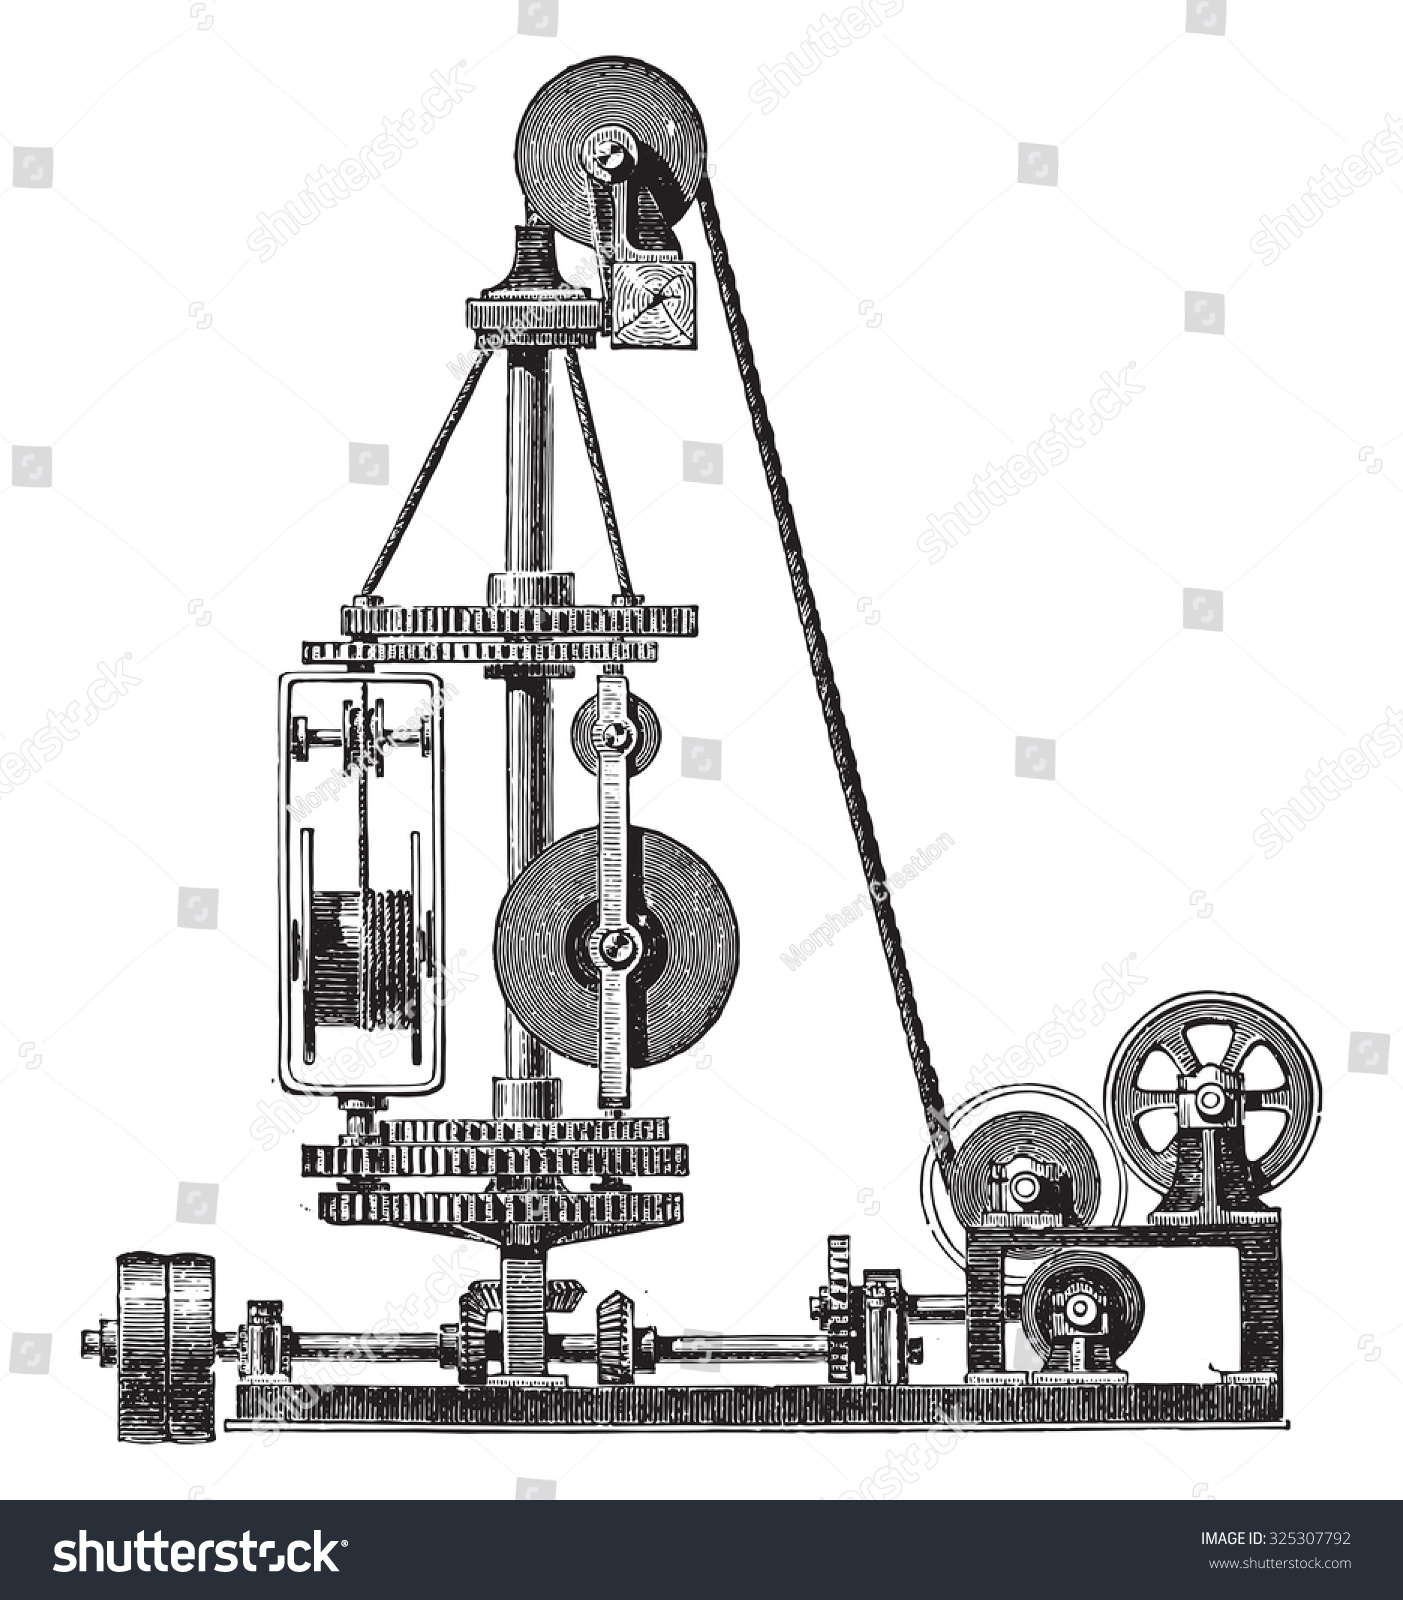 Machine Wire Vintage Engraved Illustration Industrial Stock Machines Wiring Diagram Wires Encyclopedia E O Lami